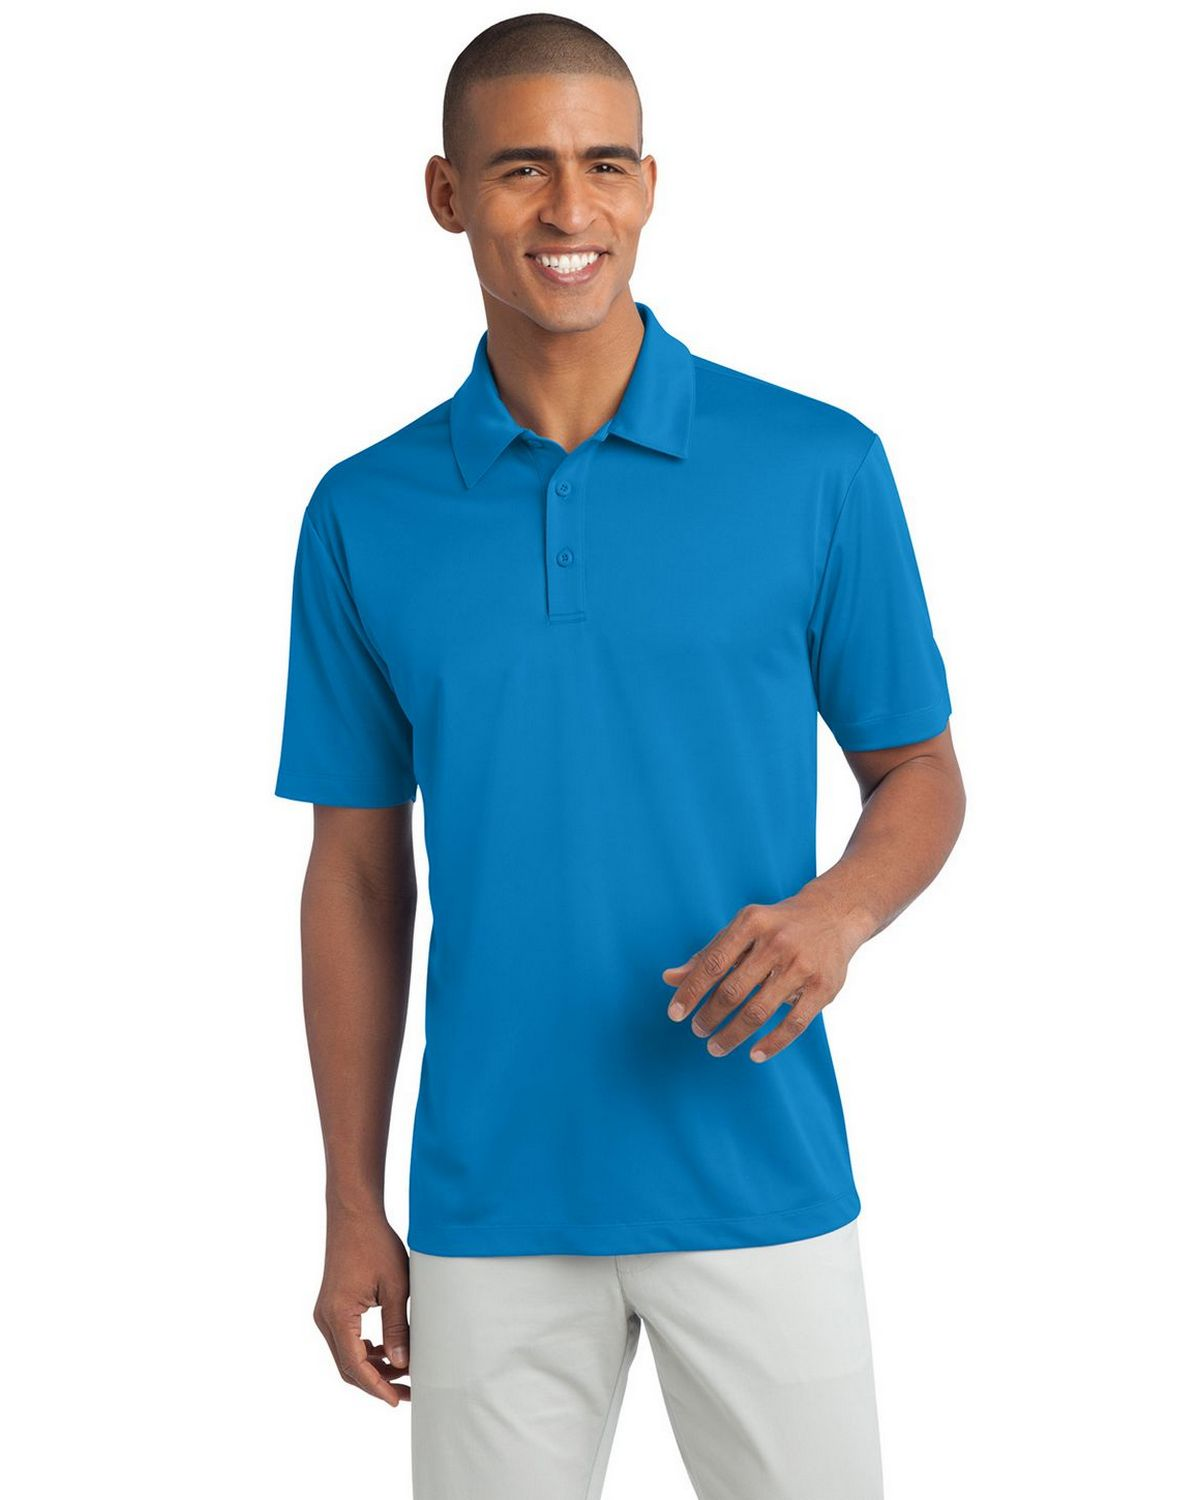 Port Authority K540 Men's Silk Touch Performance Polo - Brilliant Blue - XS #silk